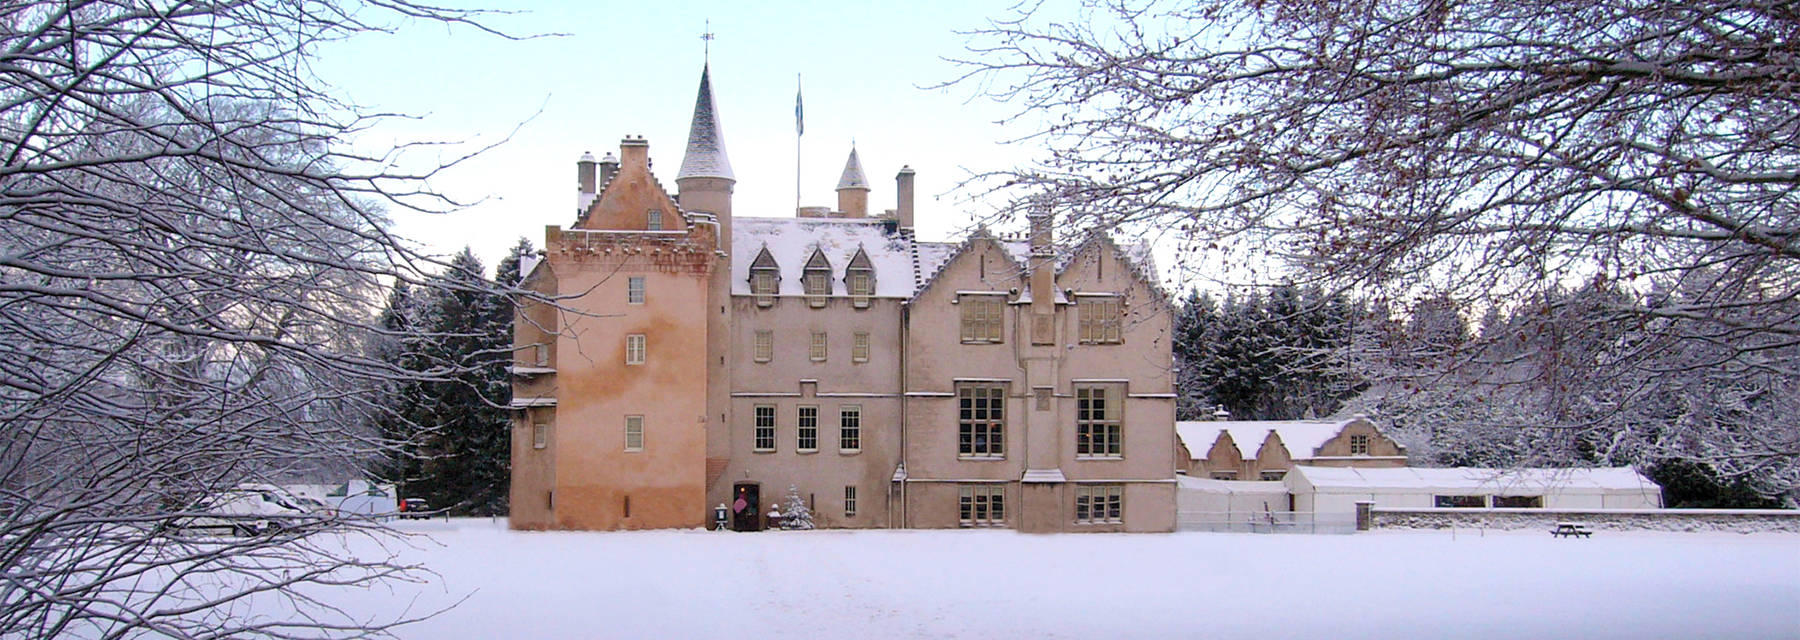 Brodie Castle exterior in the snow